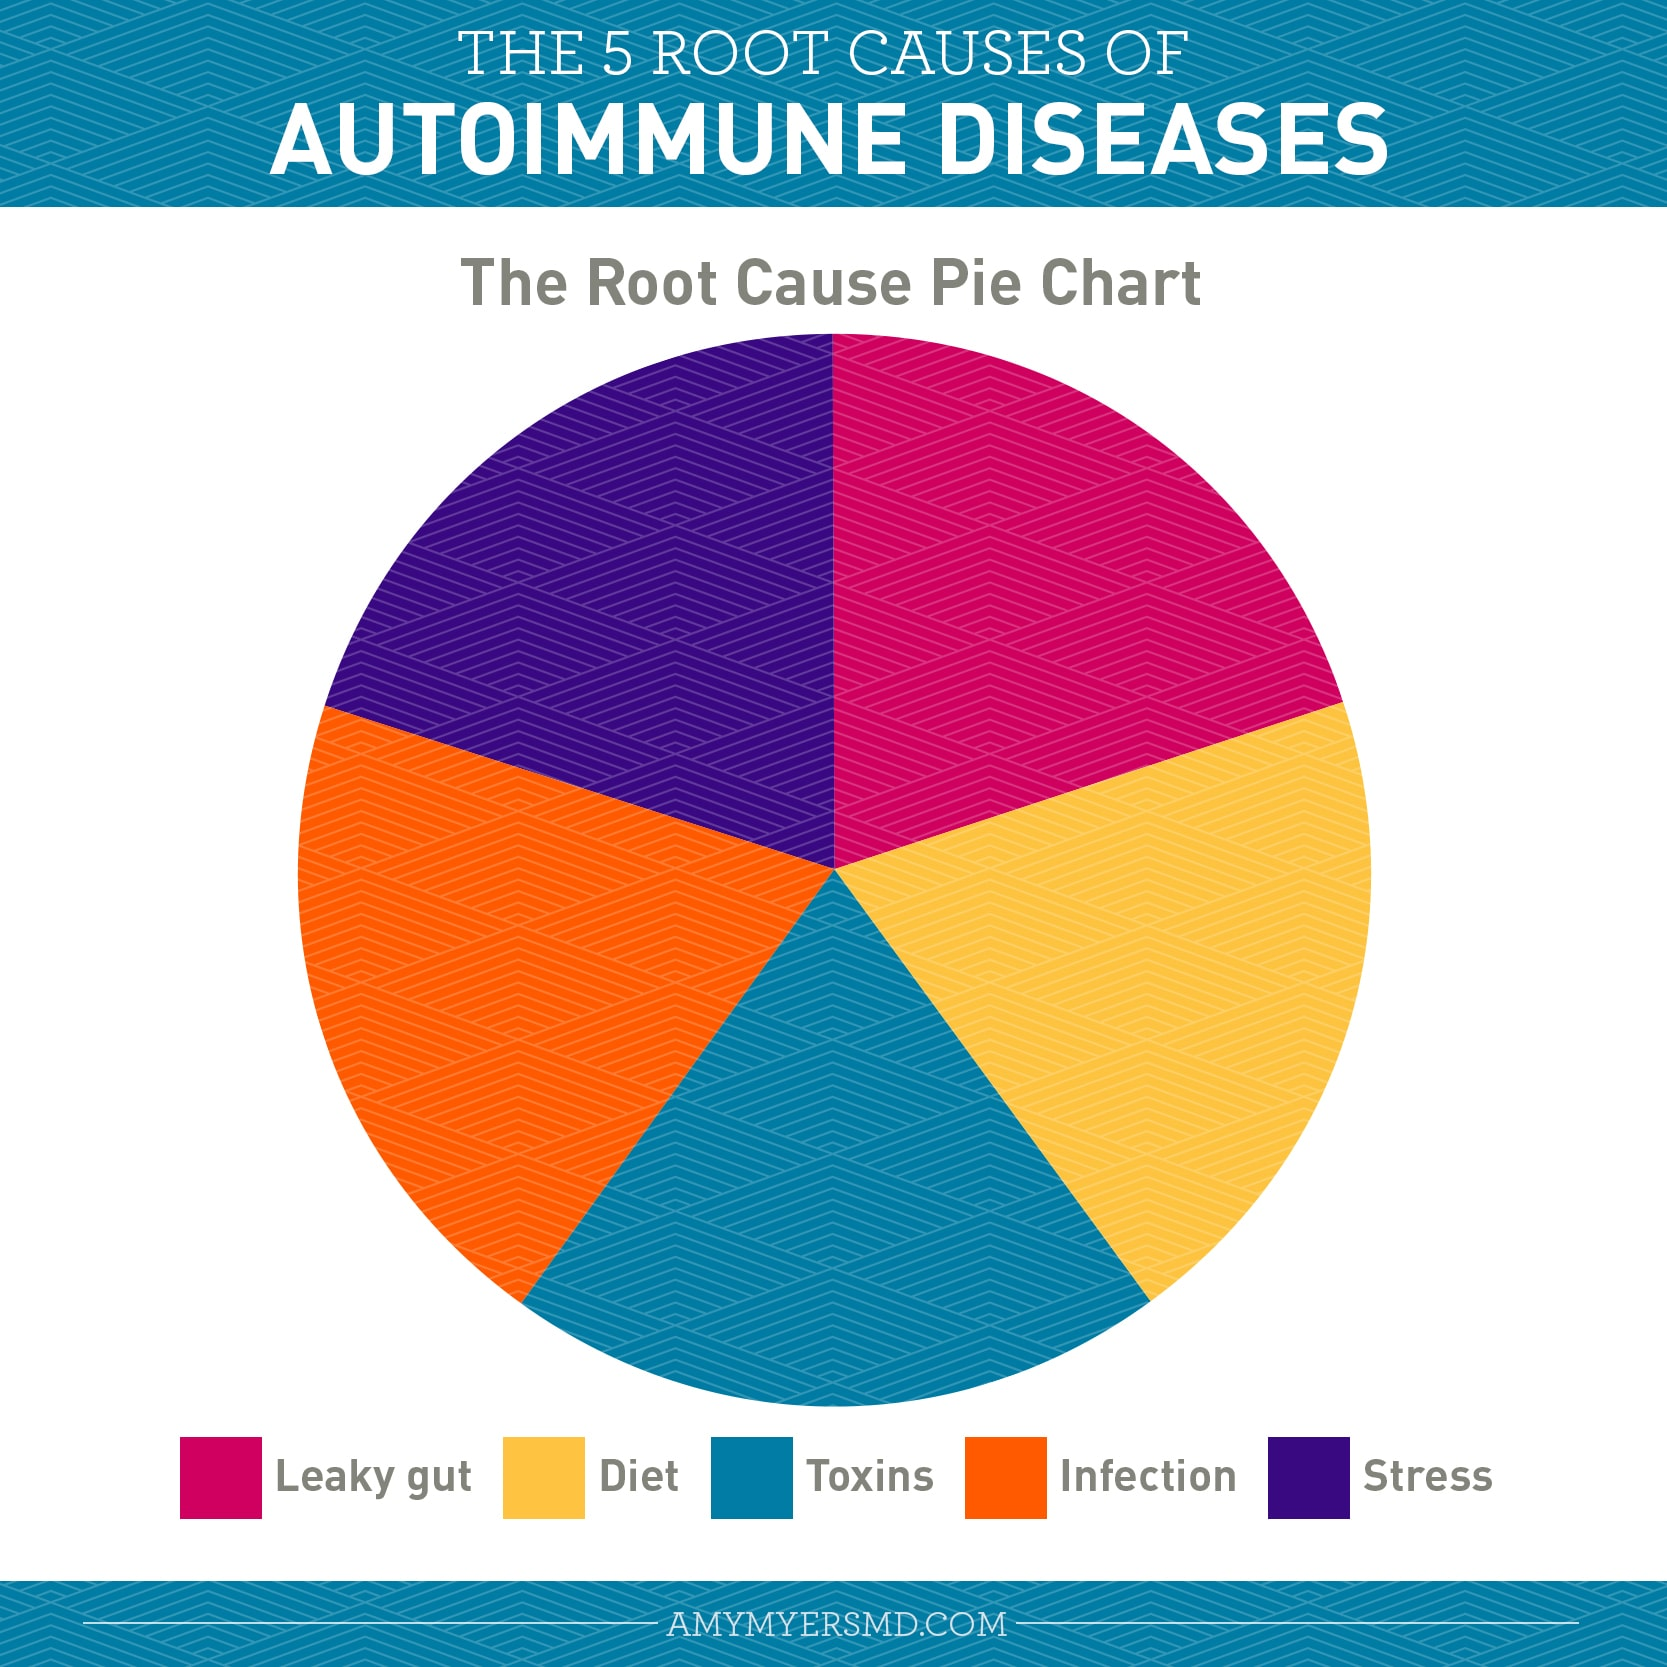 10 Signs You Have an Autoimmune Disease and How to Reverse